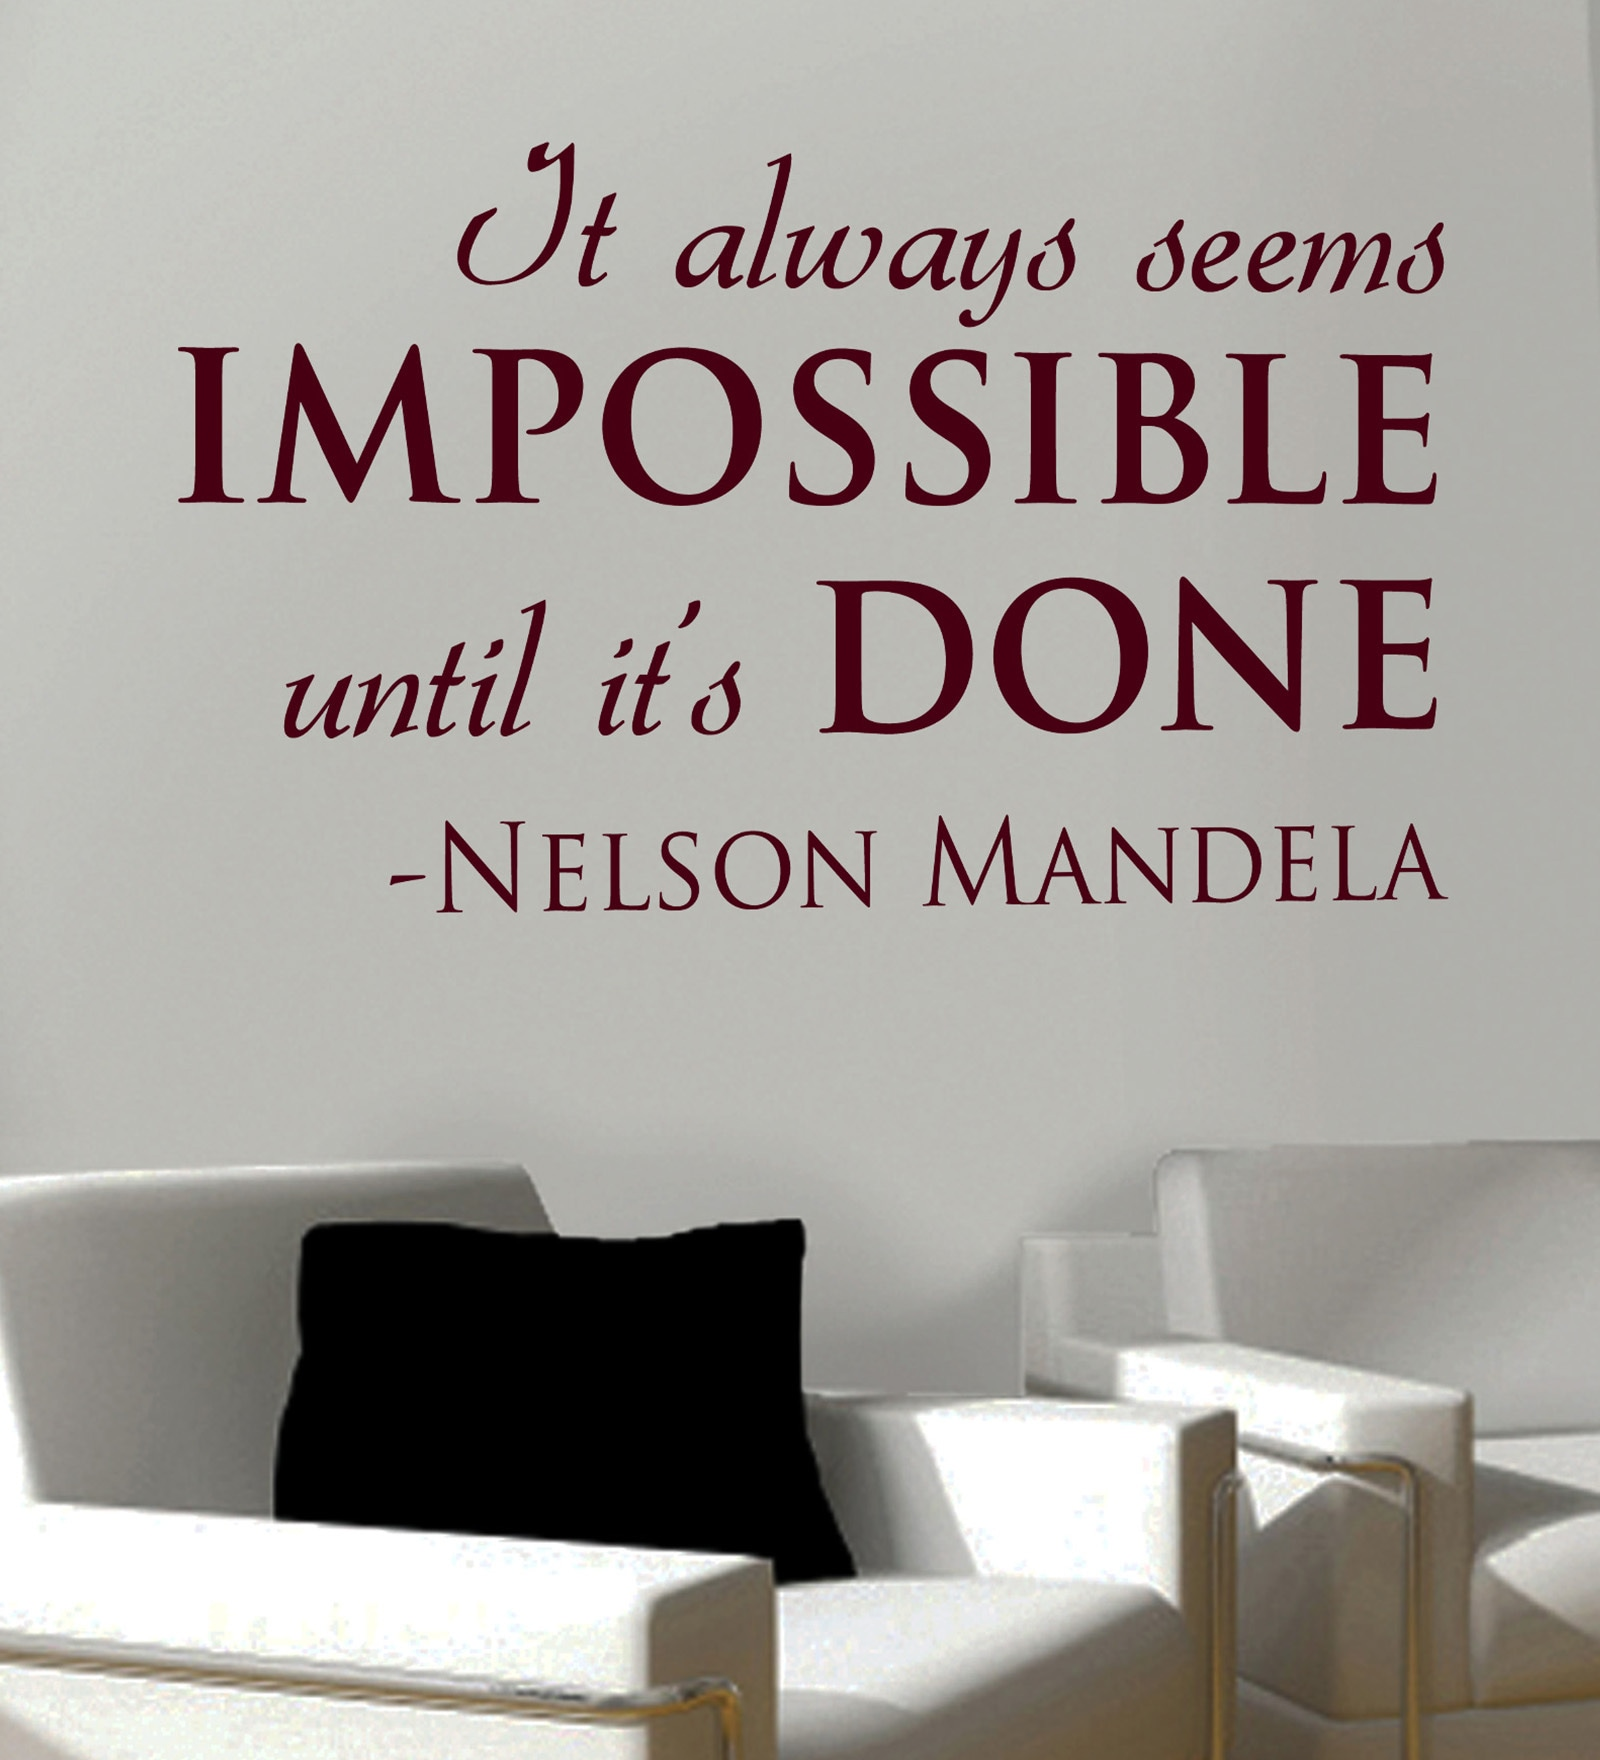 Vinyl Impossible Done Two Wall Sticker in Burgundy by Creative Width